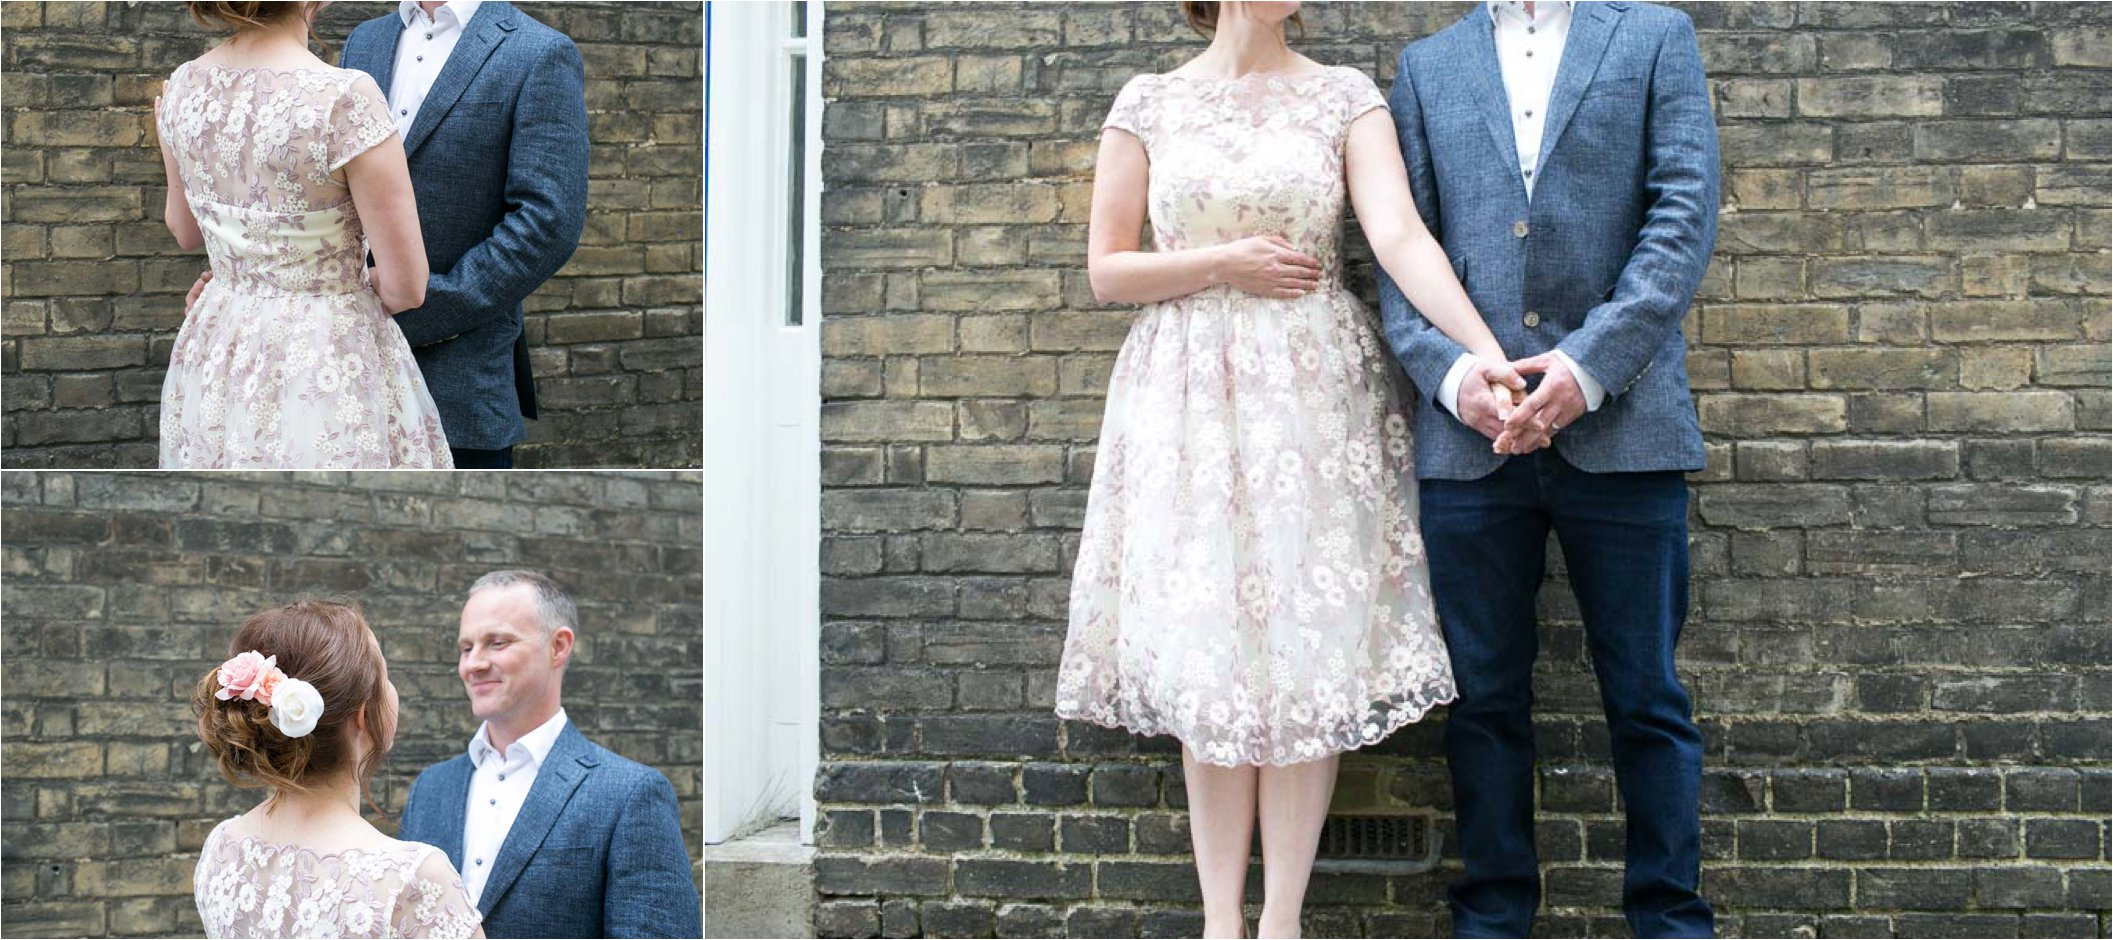 quirky wedding photography in bury st edmunds, suffolk